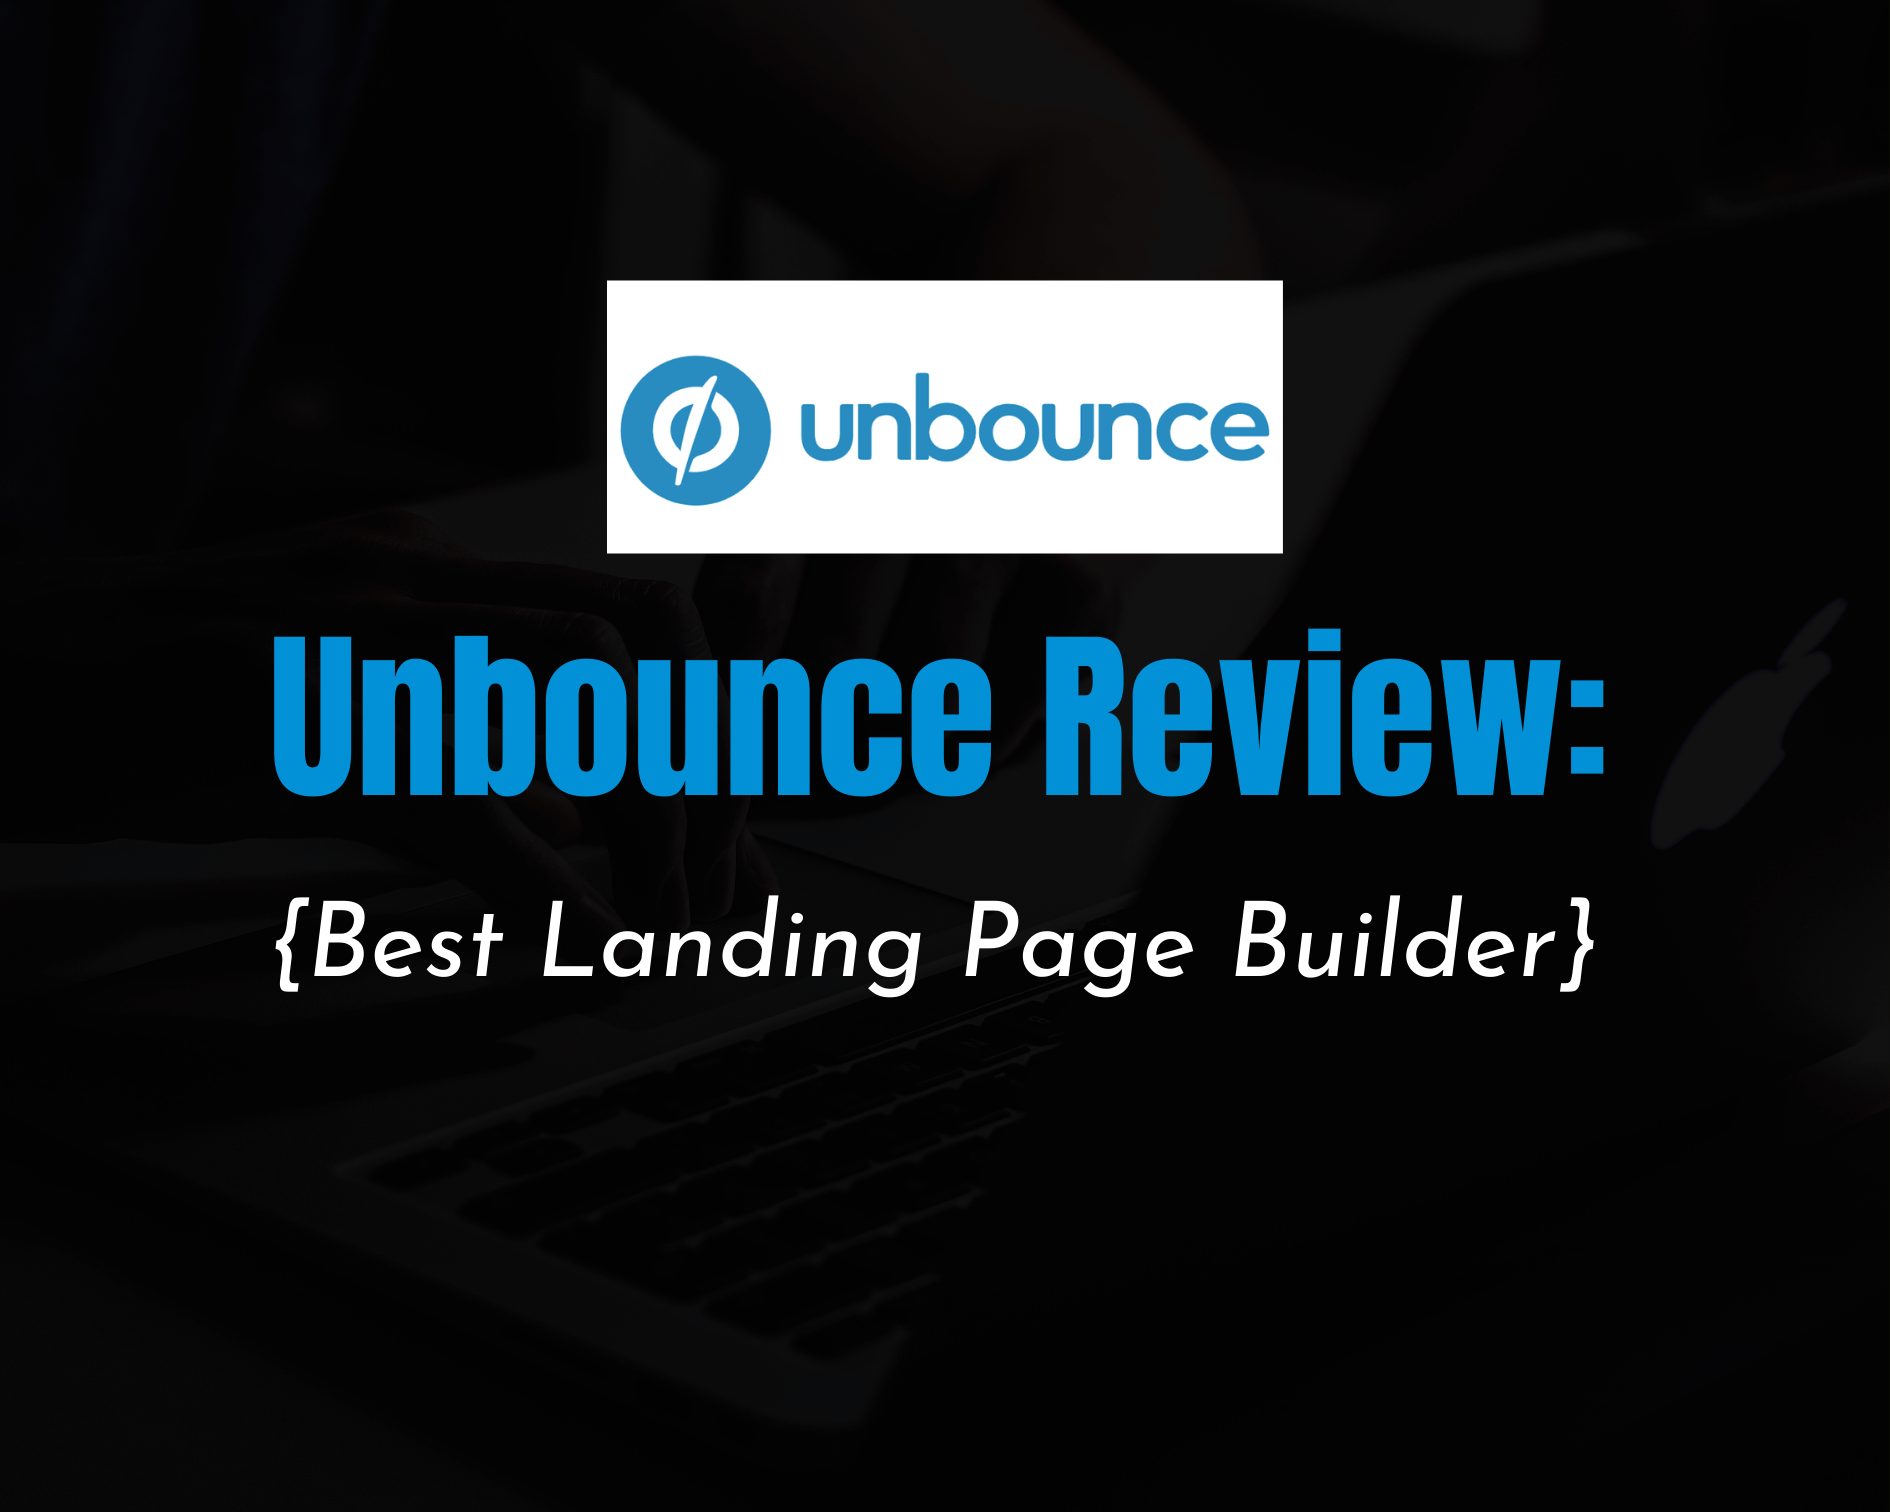 Unbounce Review: Best landing Page Builder for 2021 and Beyond